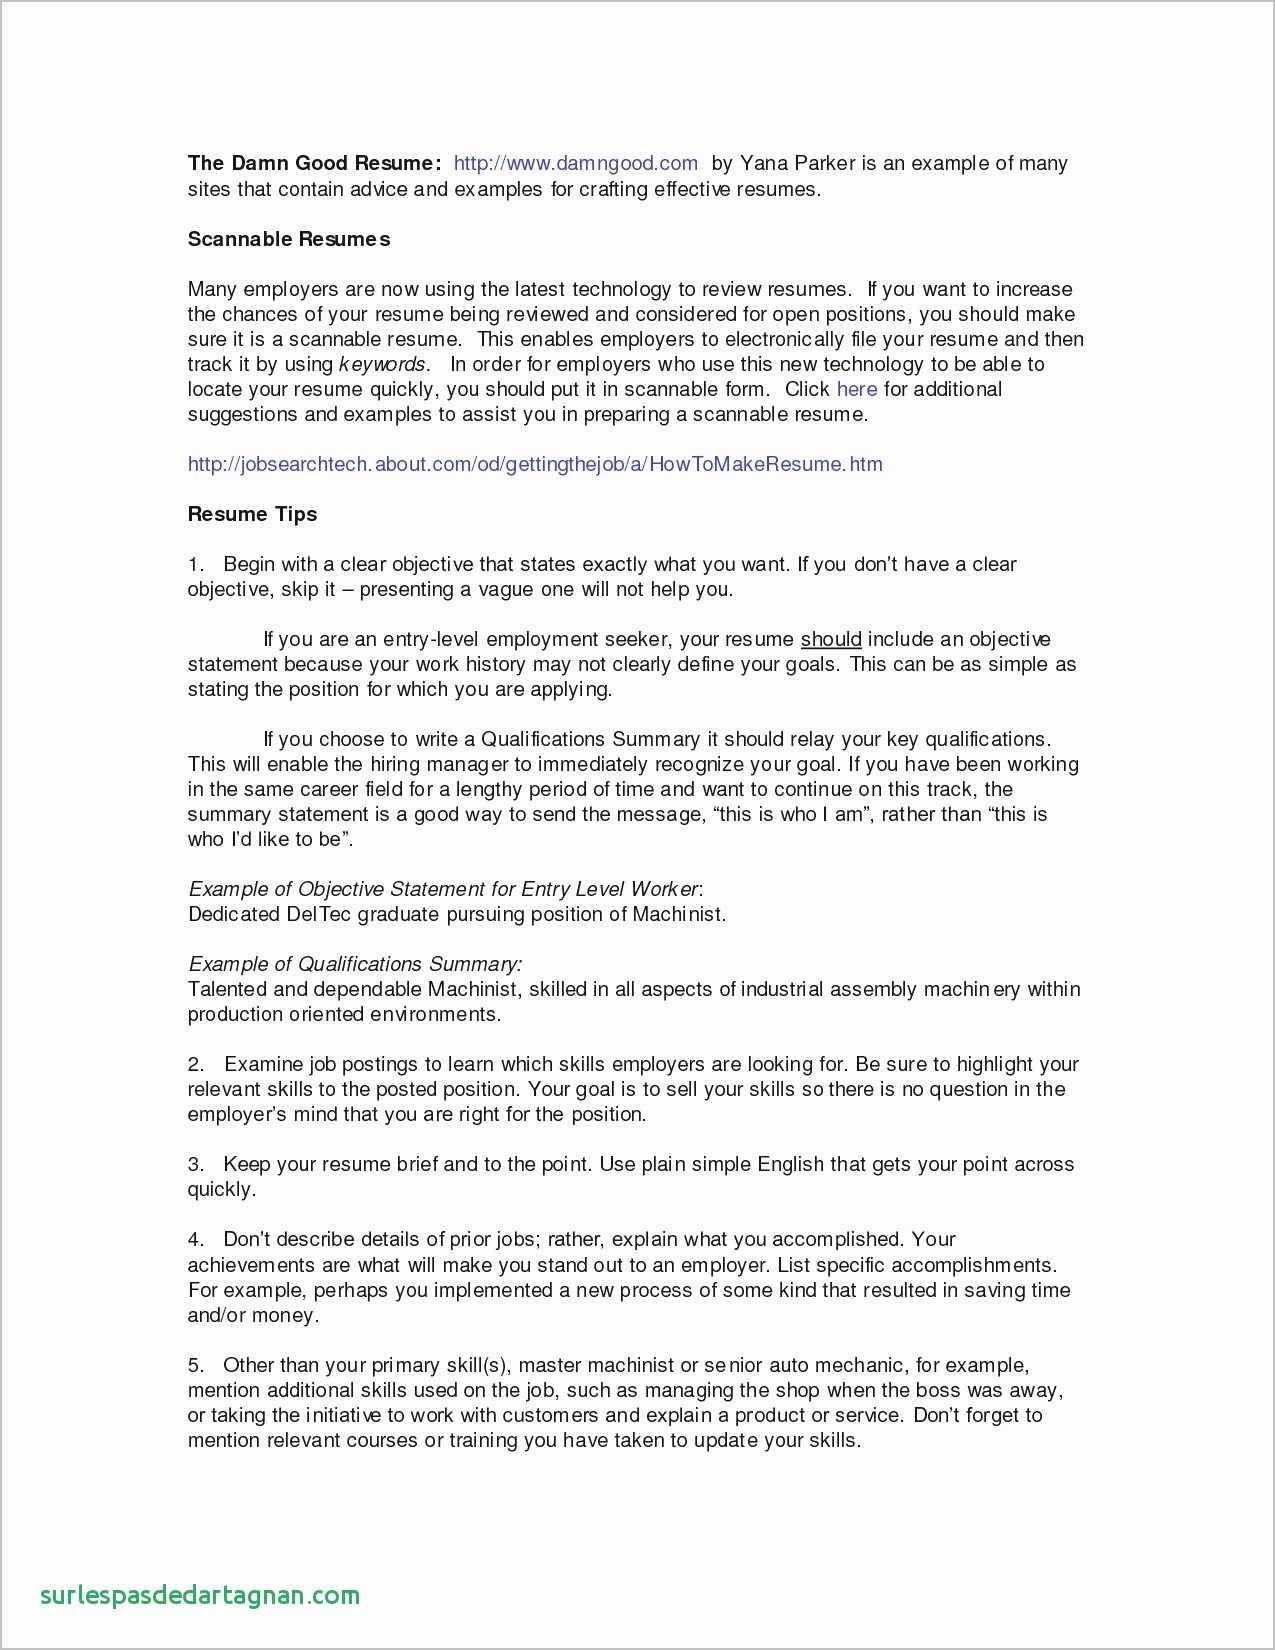 perfect resume maker example-Professional Resume Builder Best Elegant Best Best Resume Maker Awesome Resume Maker 0d Best Resume 2-e